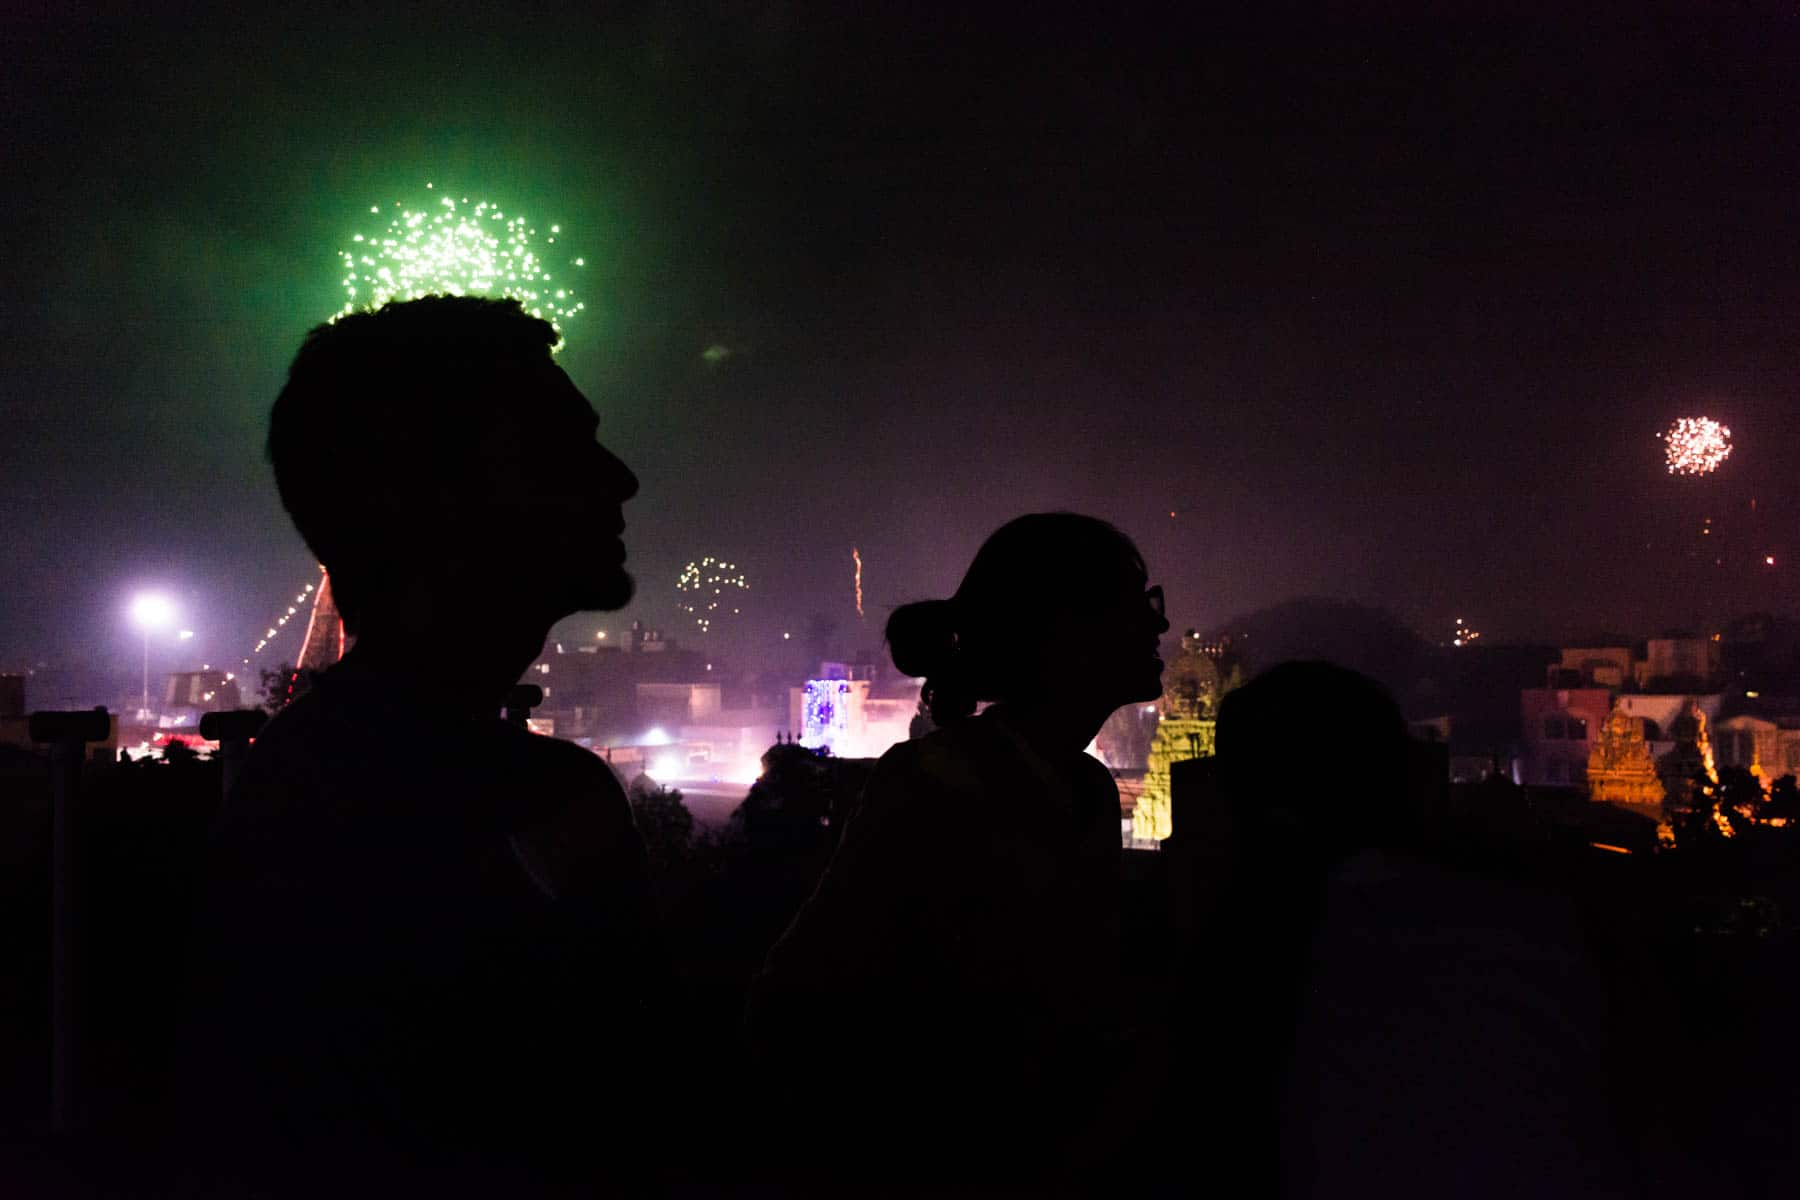 Watching from the rooftop while celebrating Diwali in Chennai, India - Lost With Purpose